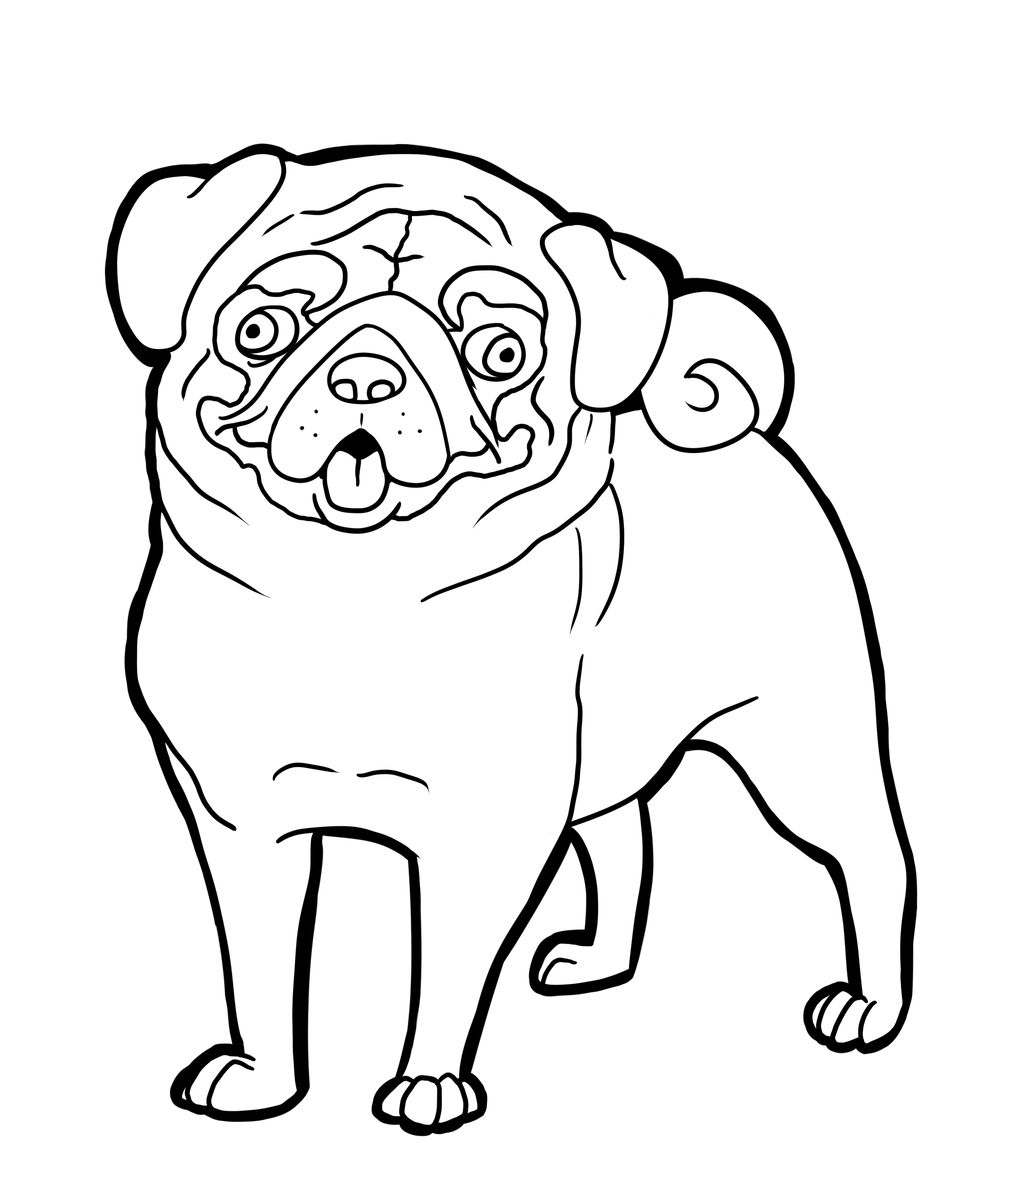 puppy pictures for coloring cute dog coloring pages to download and print for free pictures for puppy coloring